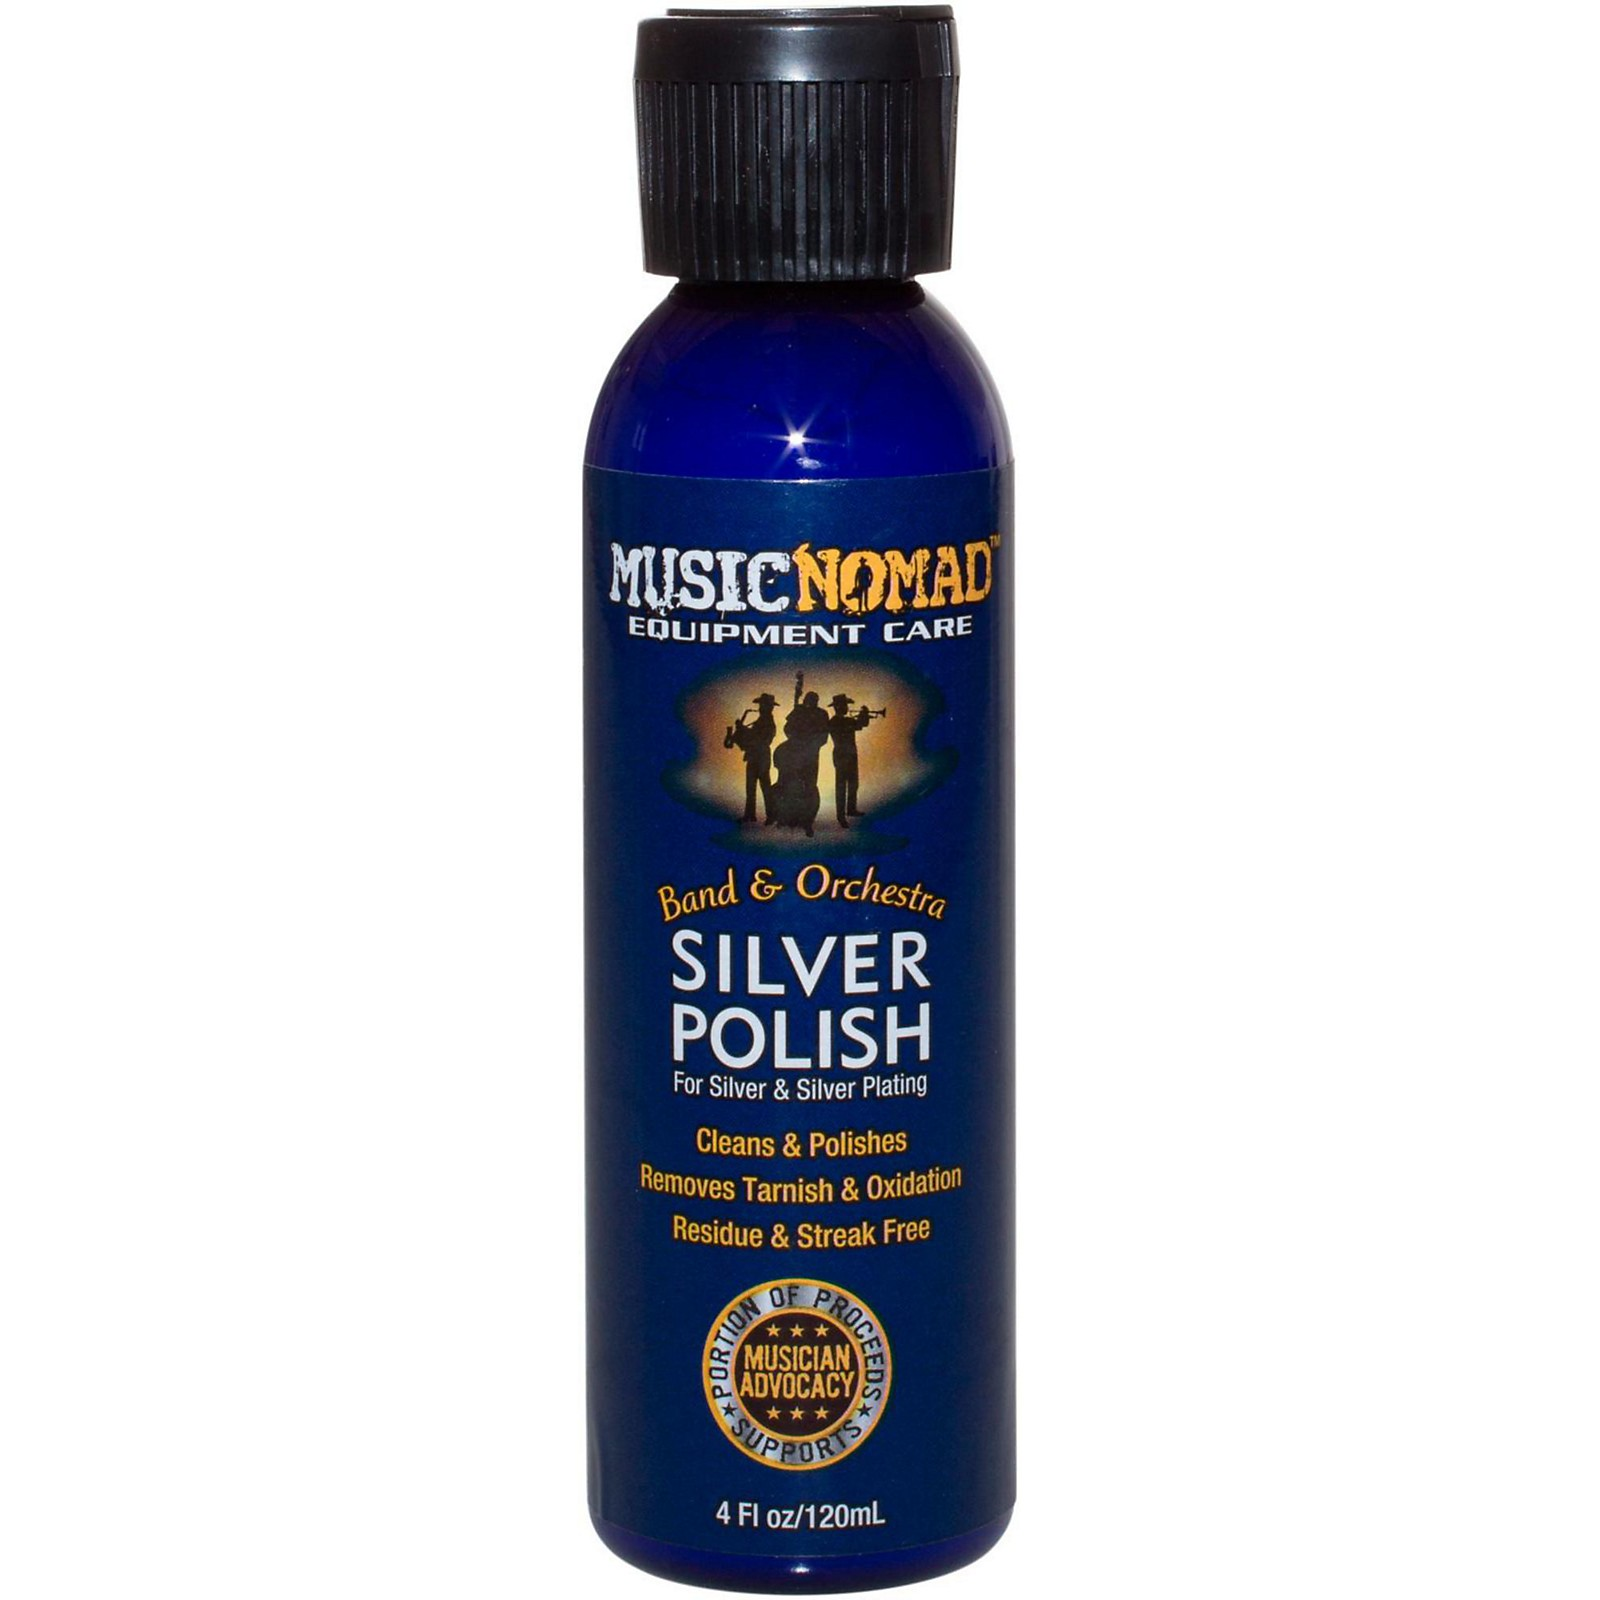 MusicNomad Silver Polish for Silver & Silver Plated Instruments